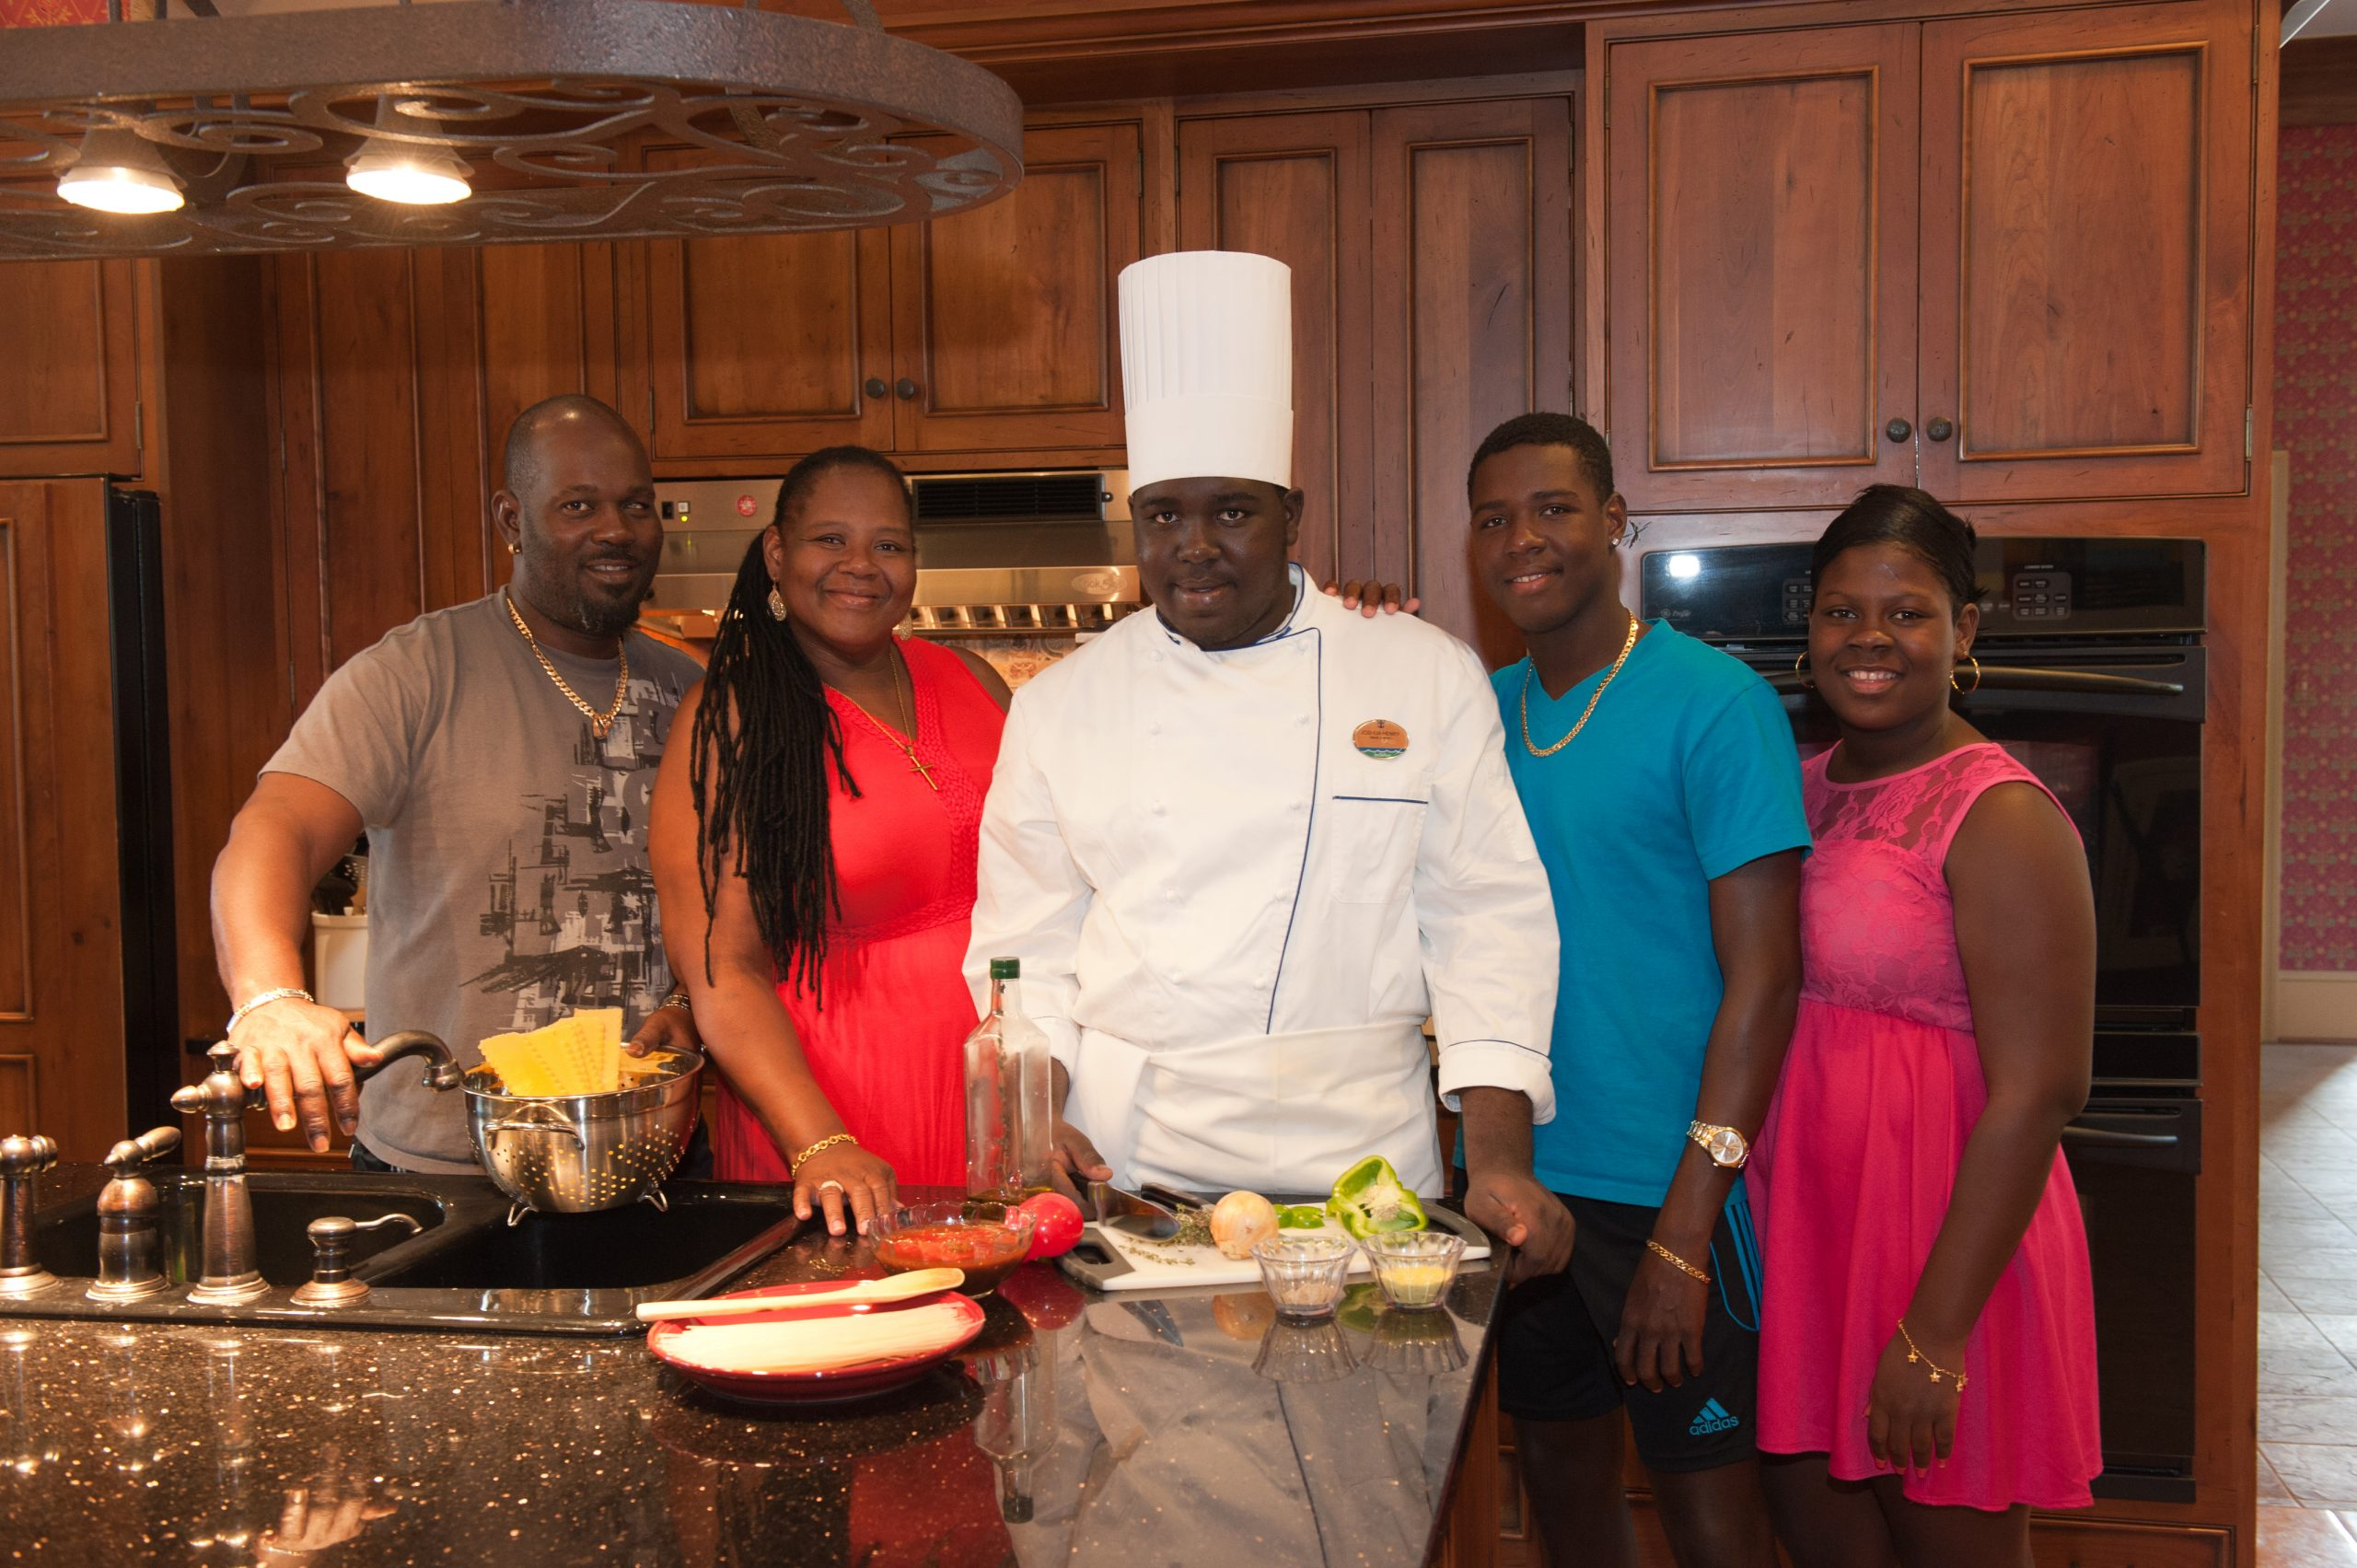 Josh Sobers-Henry, in white chef hat and clothes preparing food, and Family in The Woodmont House kitchen